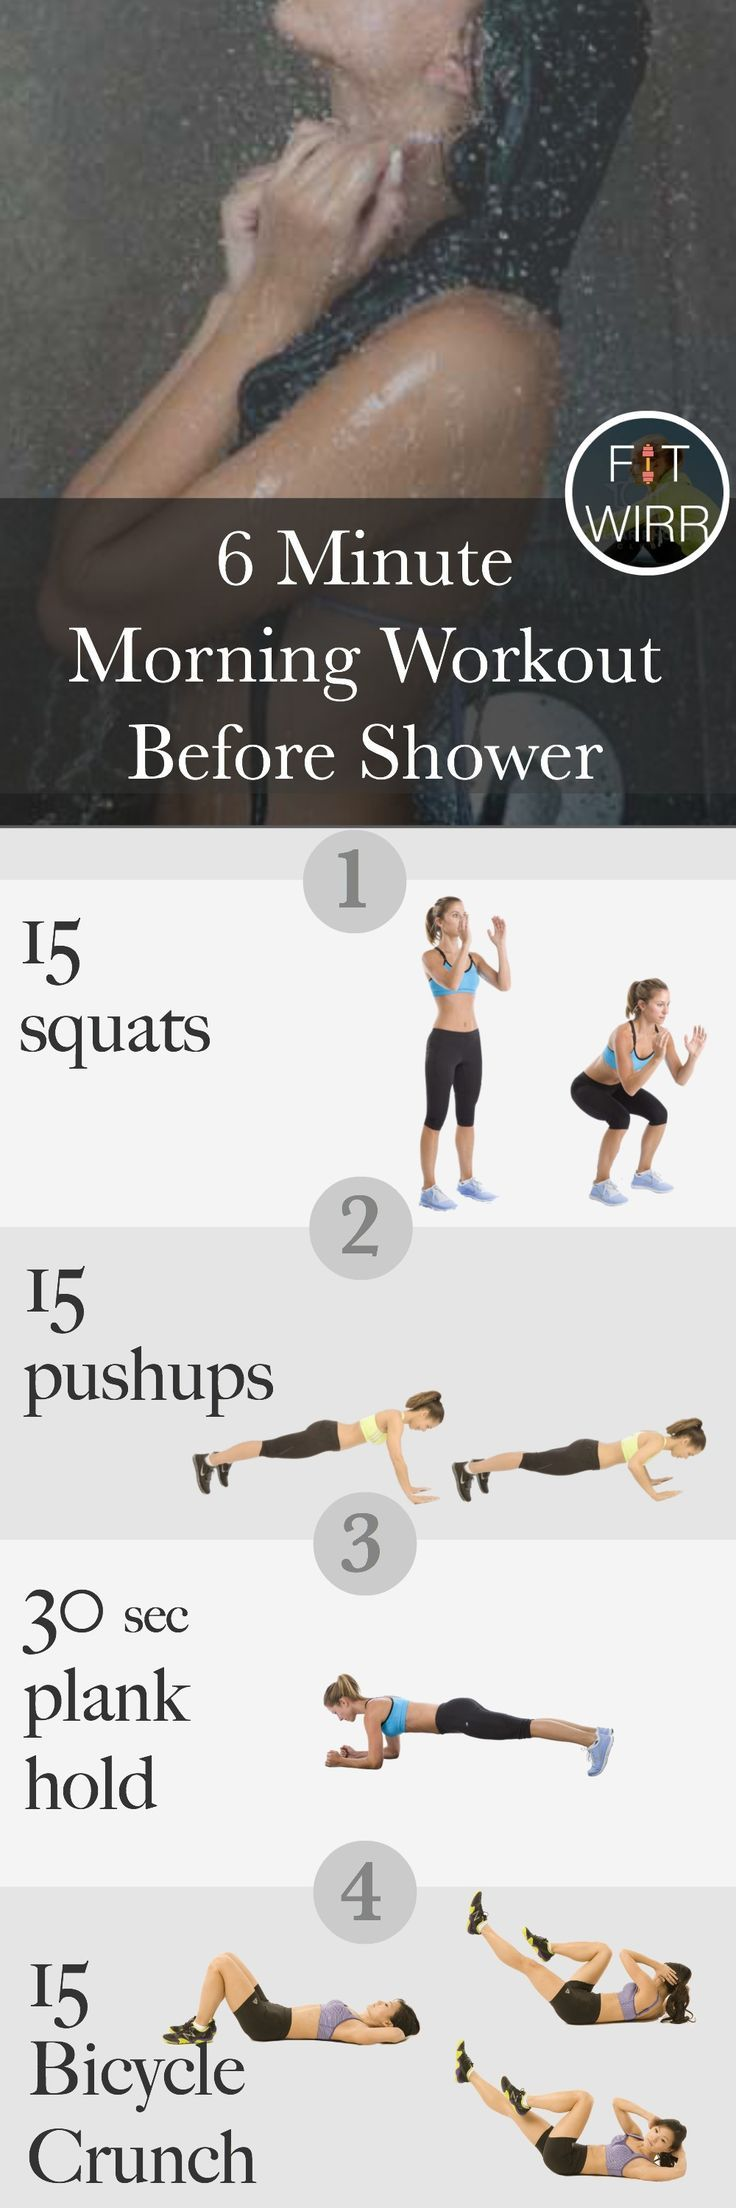 Workout Routines and Ab Workouts for Women.  Find out more by going to the photo link